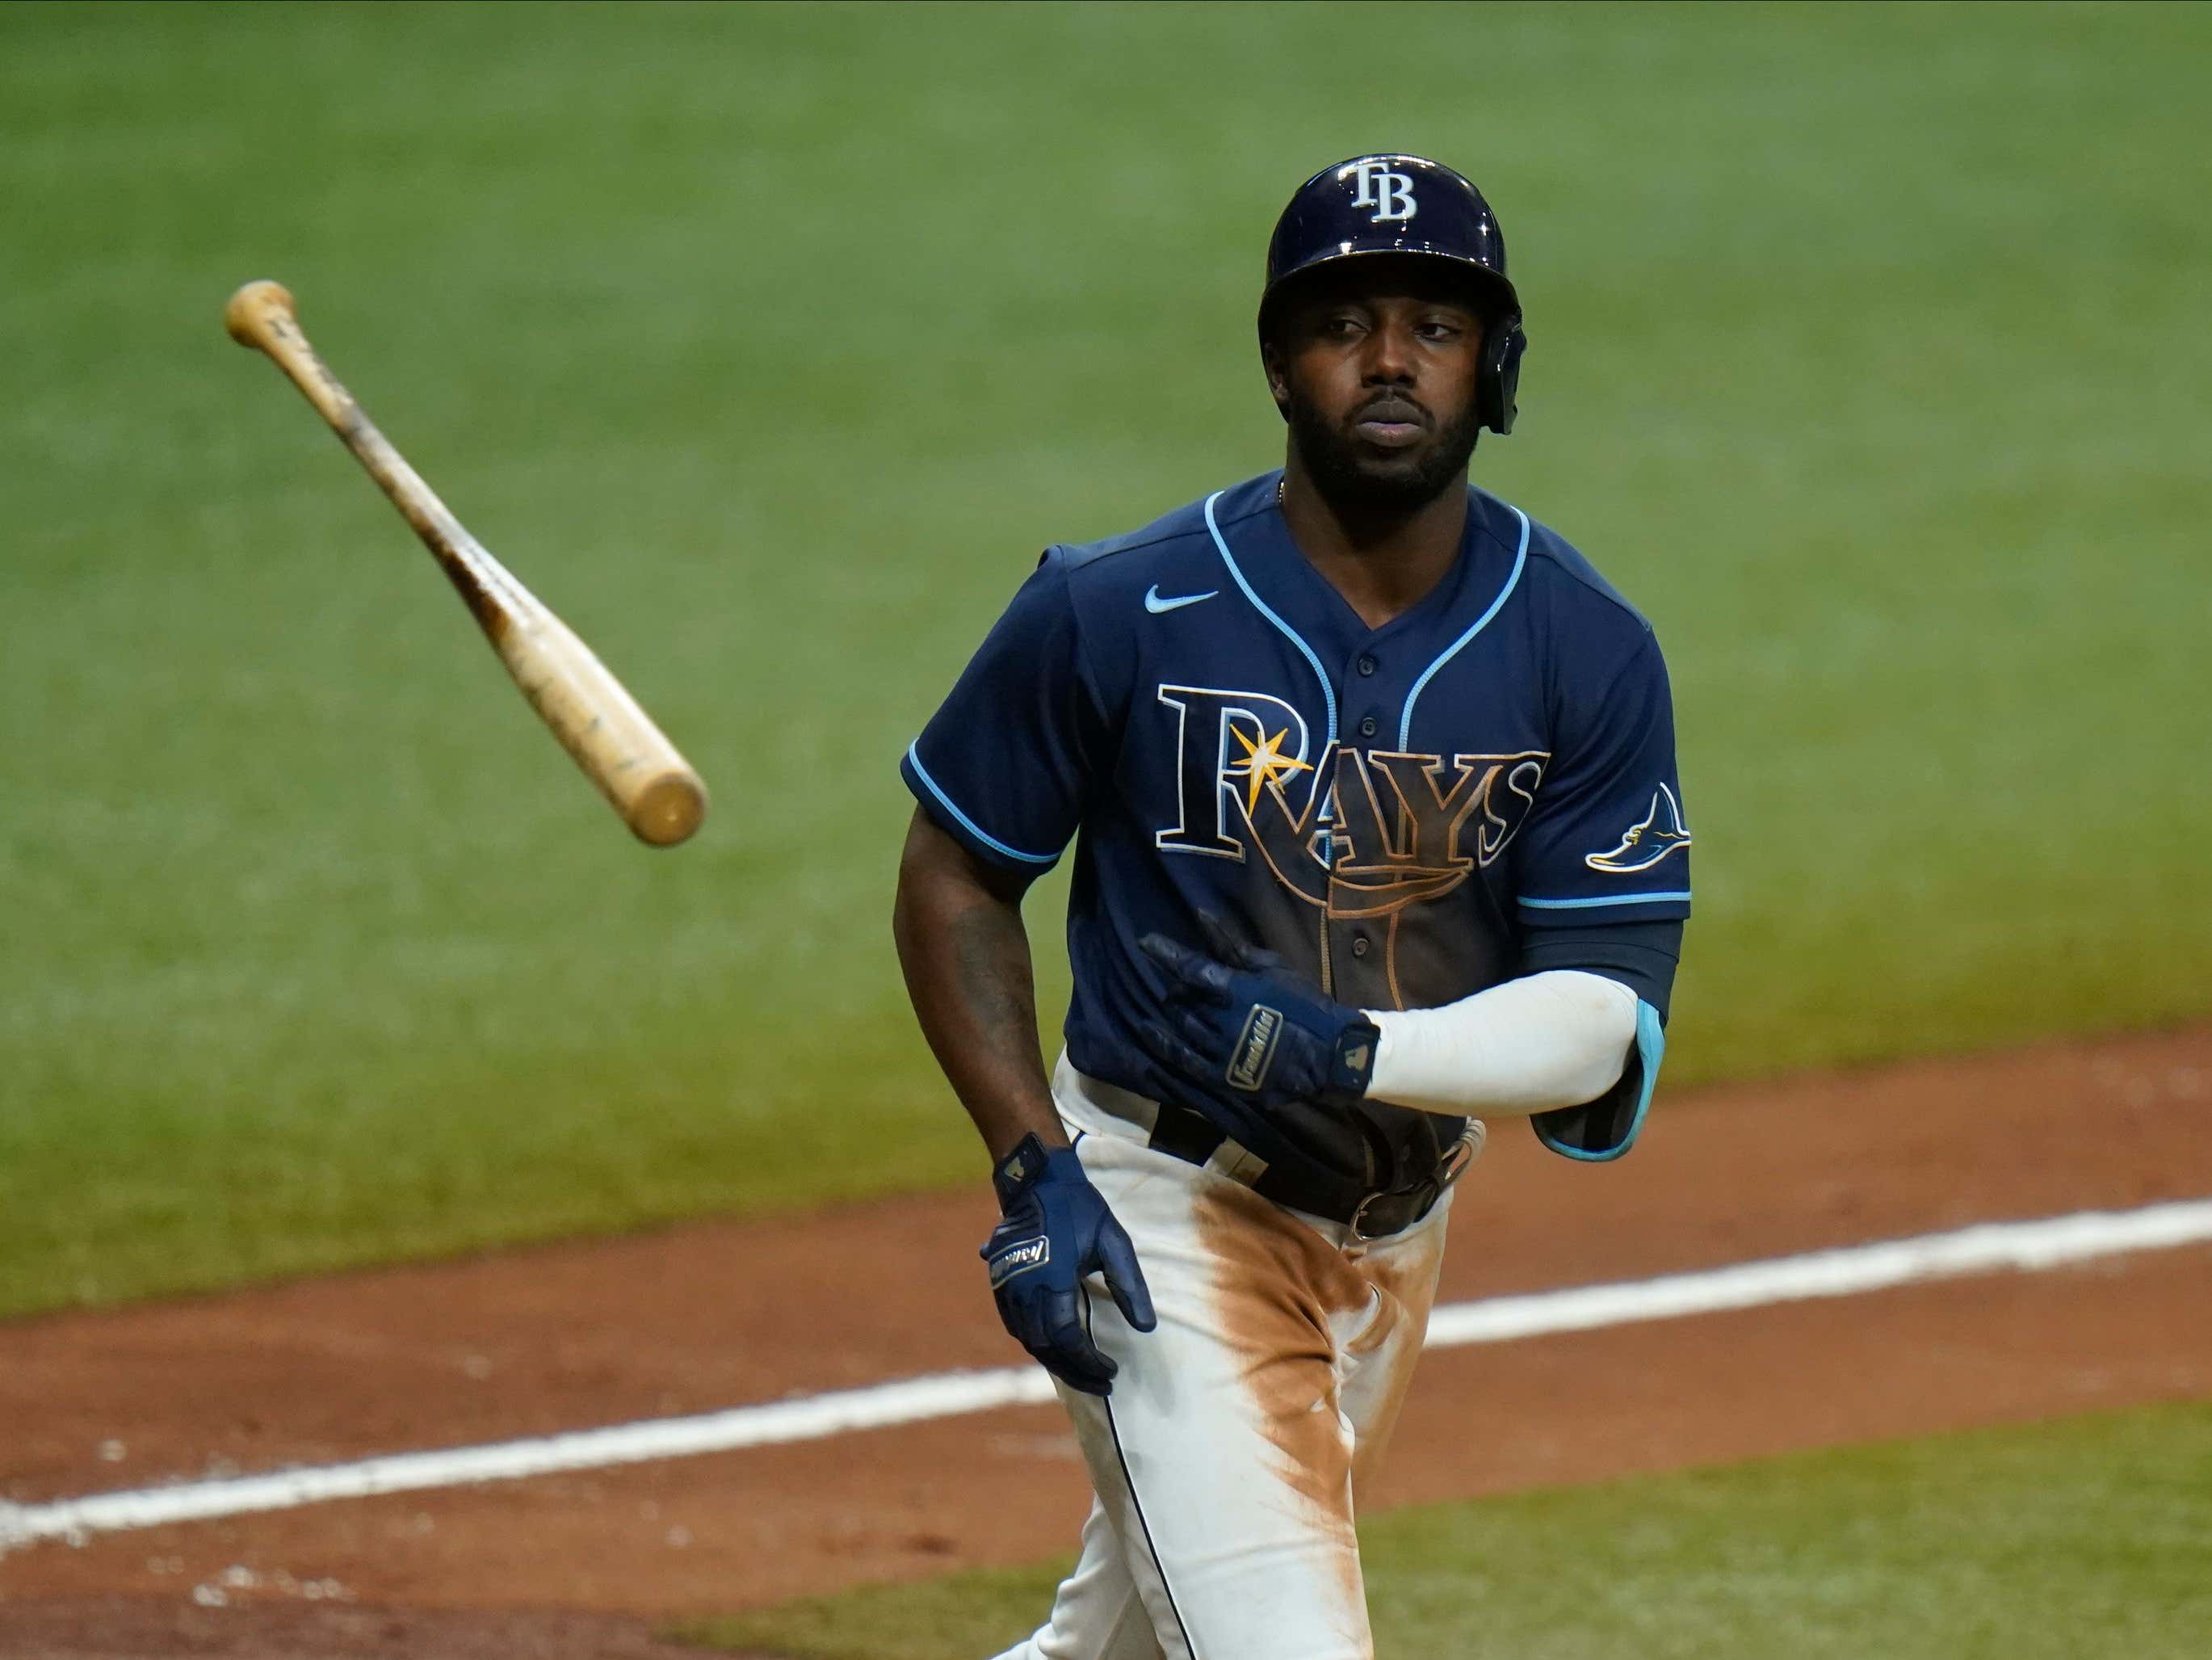 rays breakout star randy arozarena was asked about his favorite cuban baseball players so he named himself barstool sports rays breakout star randy arozarena was